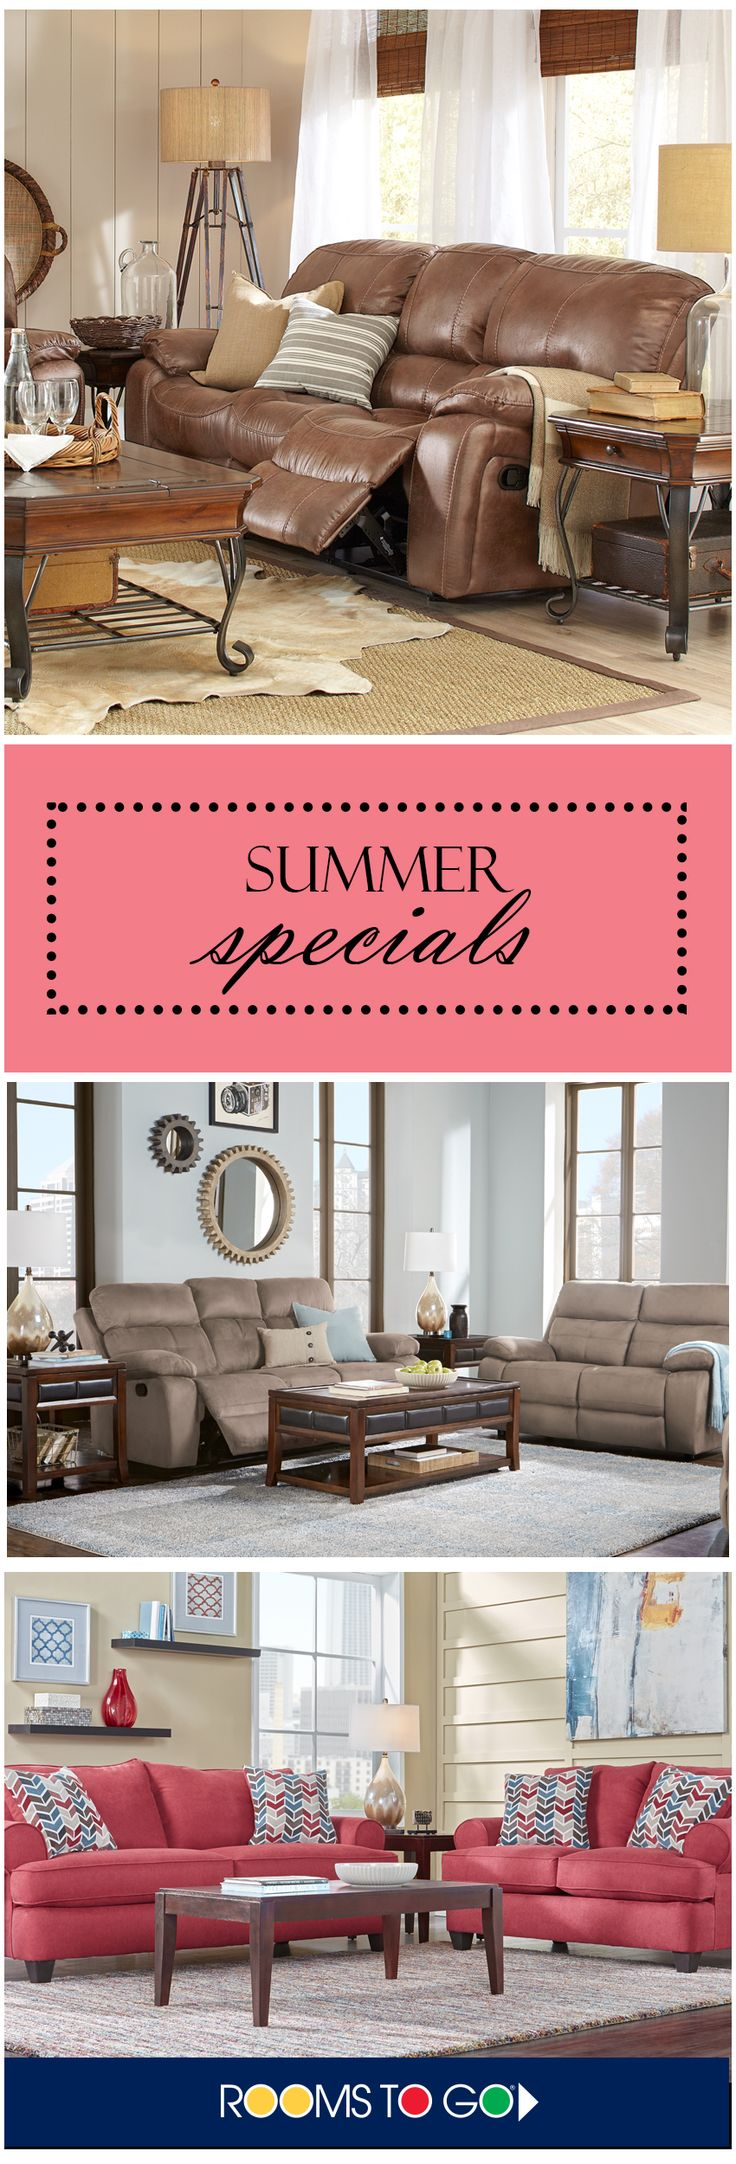 Visit Rooms To Go Now During Our Summer Sales Event, And Save On Our  Amazing Collections Of Living Rooms, Dining Rooms And Bedrooms. Special  Ends On Shop ...